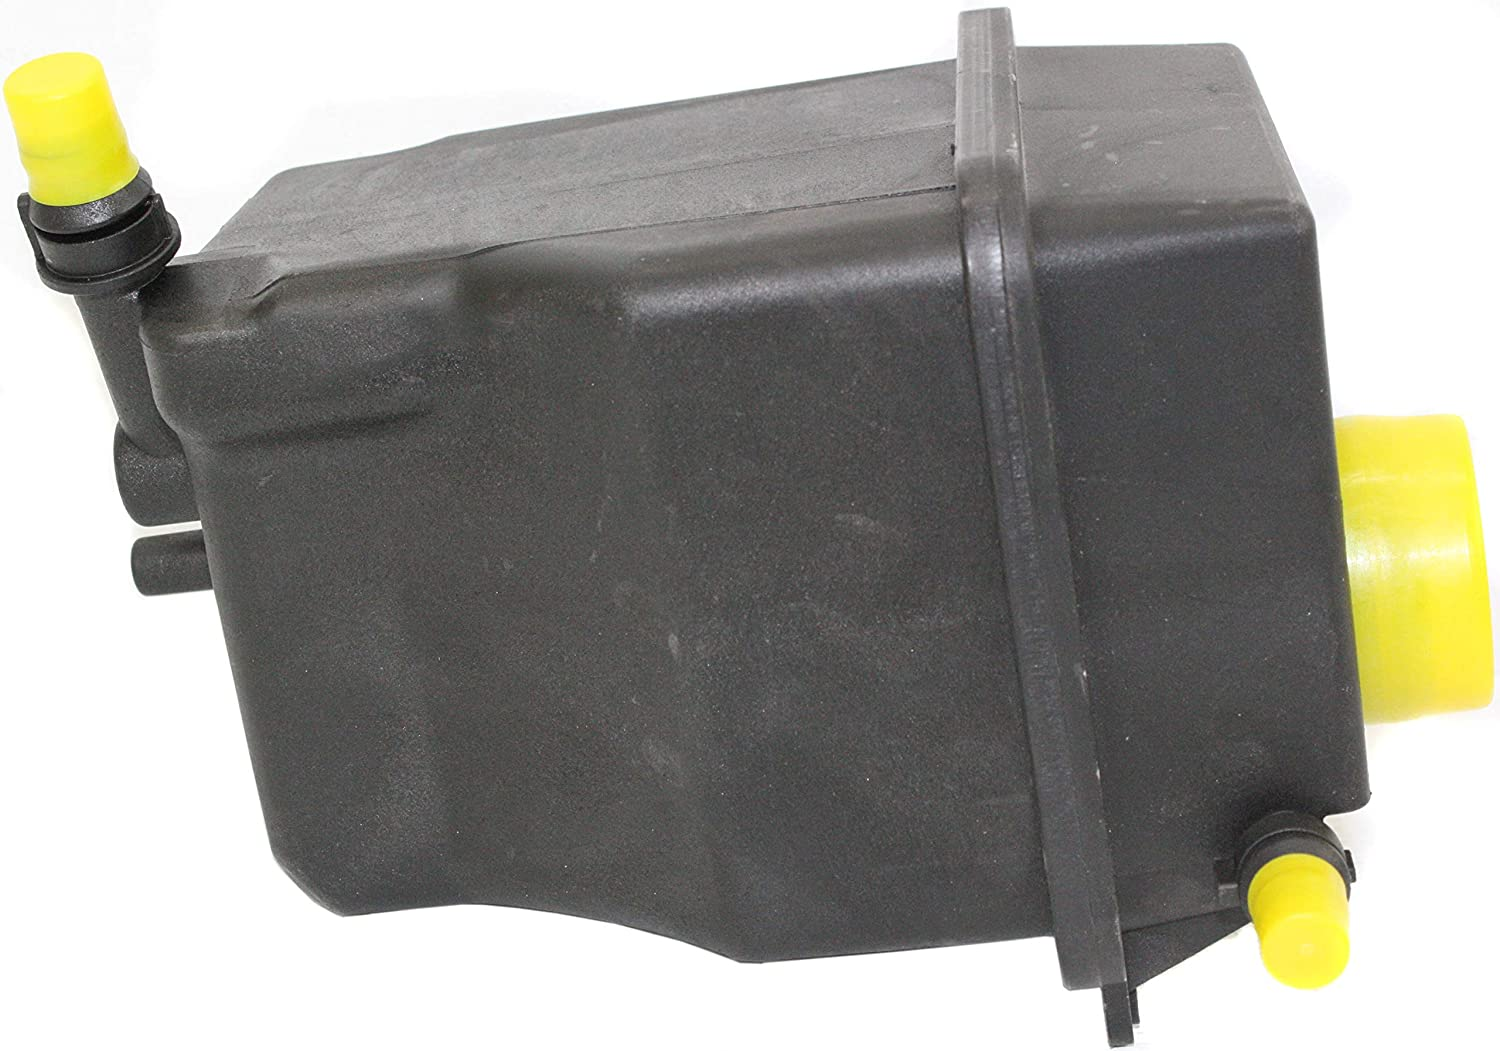 X5 2004-2006 Coolant Reservoir Compatible with LAND ROVER RANGE ROVER 2003-2005